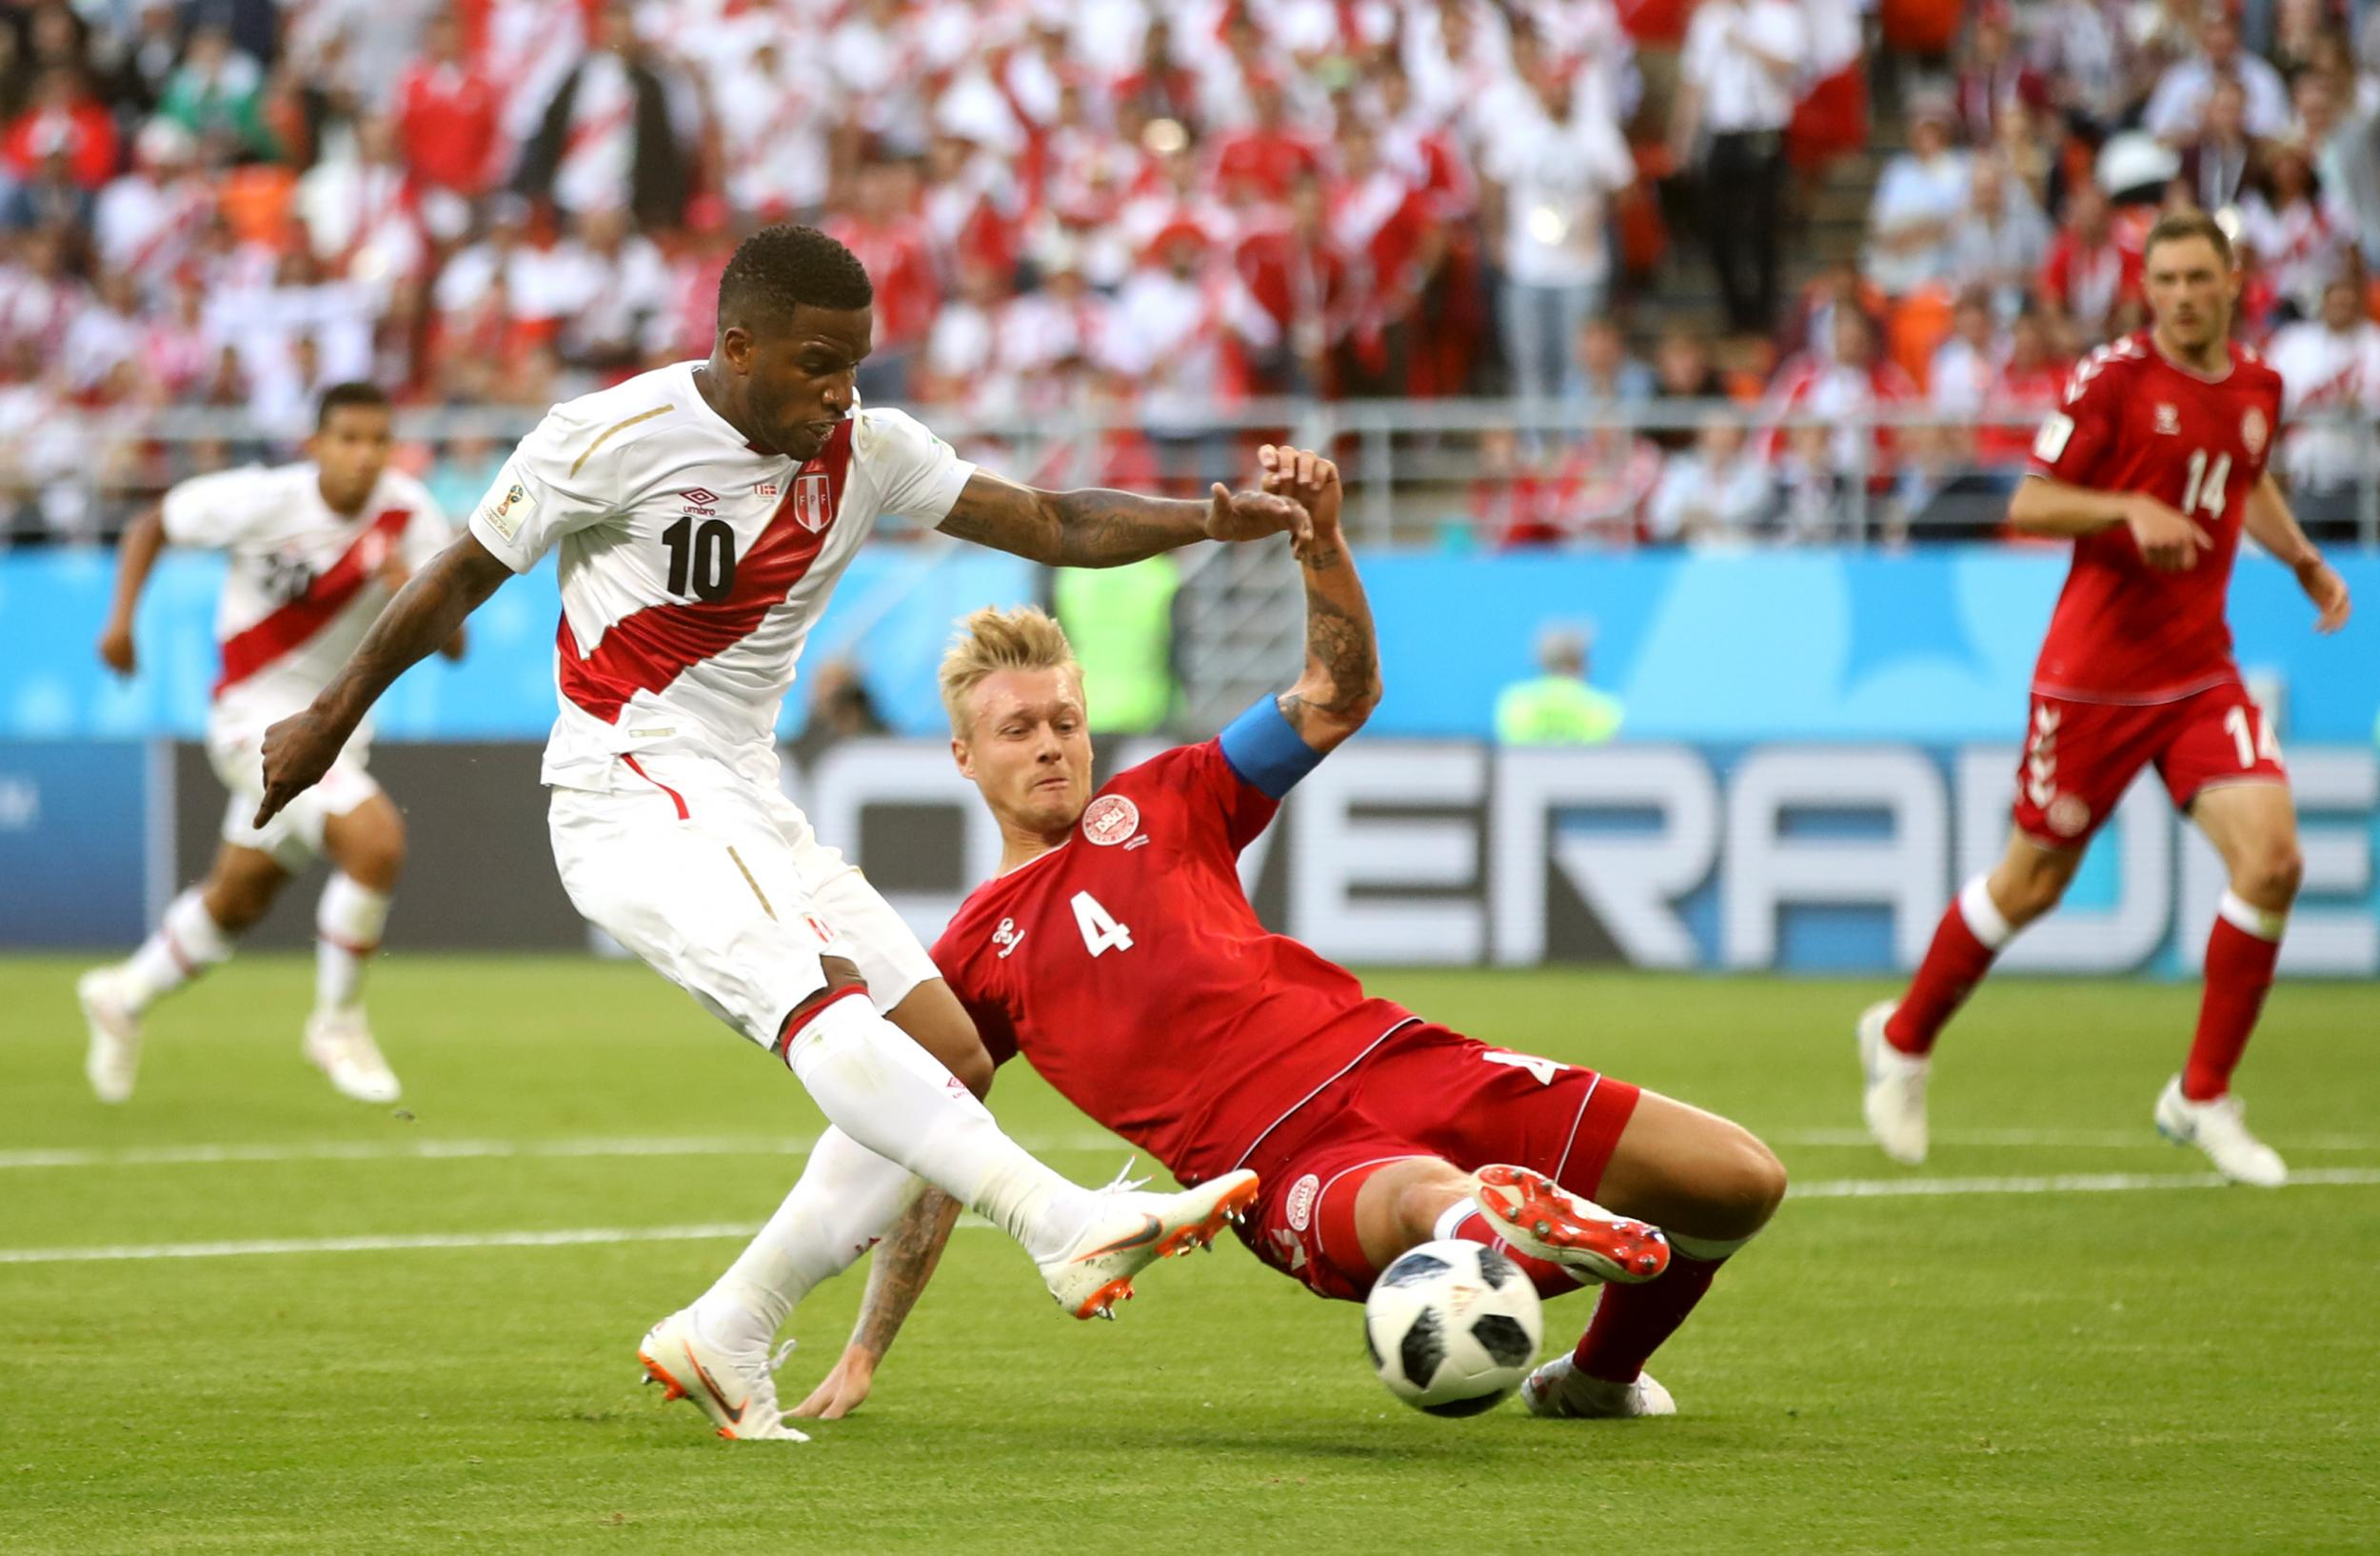 World Cup 2018: Jefferson Farfan ruled out of Peru's final World Cup match with 'traumatic brain injury'